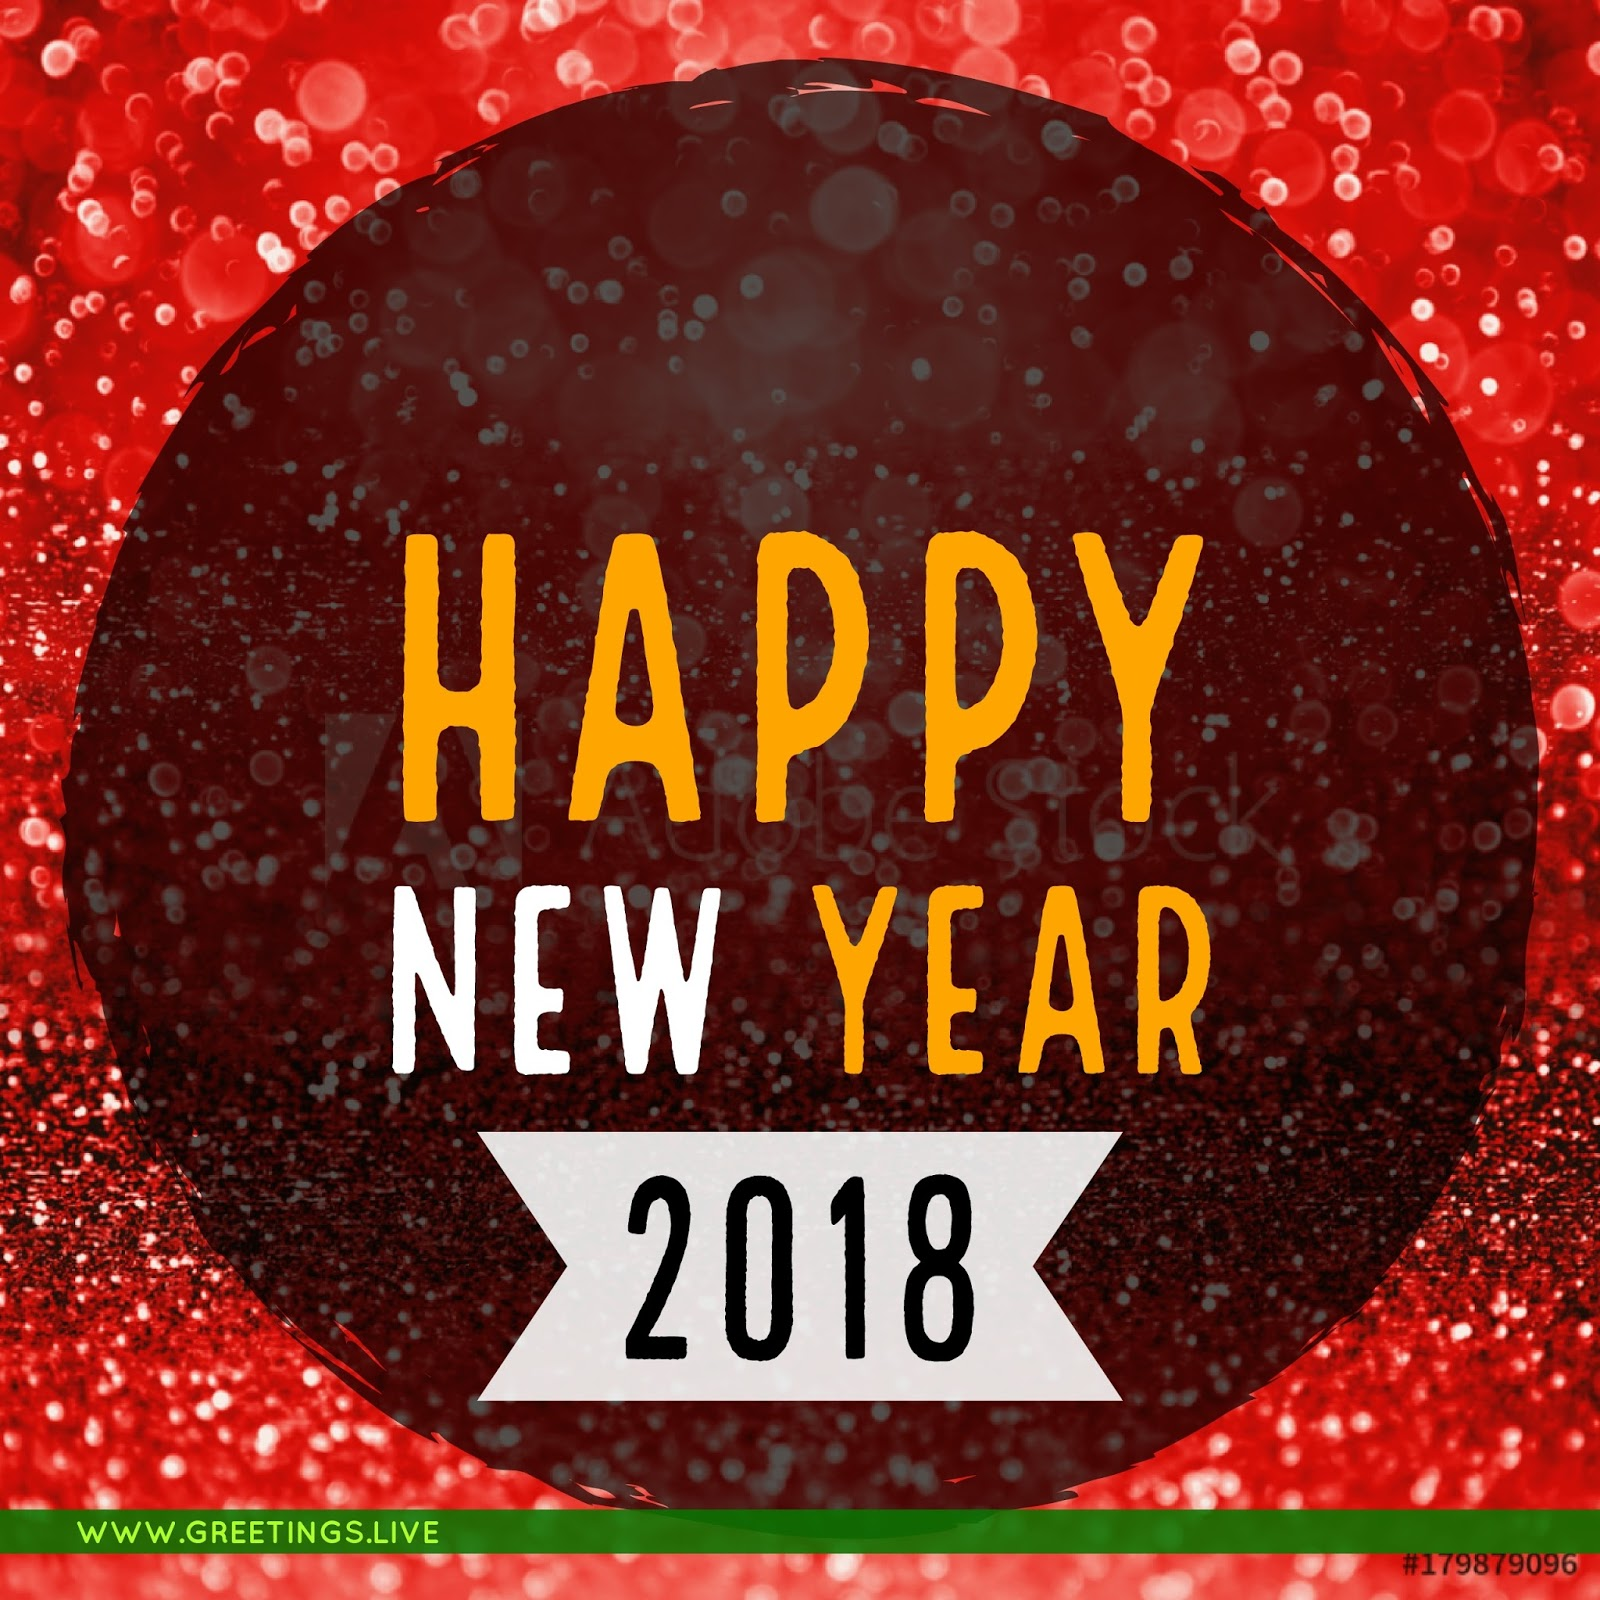 2018 New Year Wishes Greetings New Year Wishes 2018 Ultra Hd Image